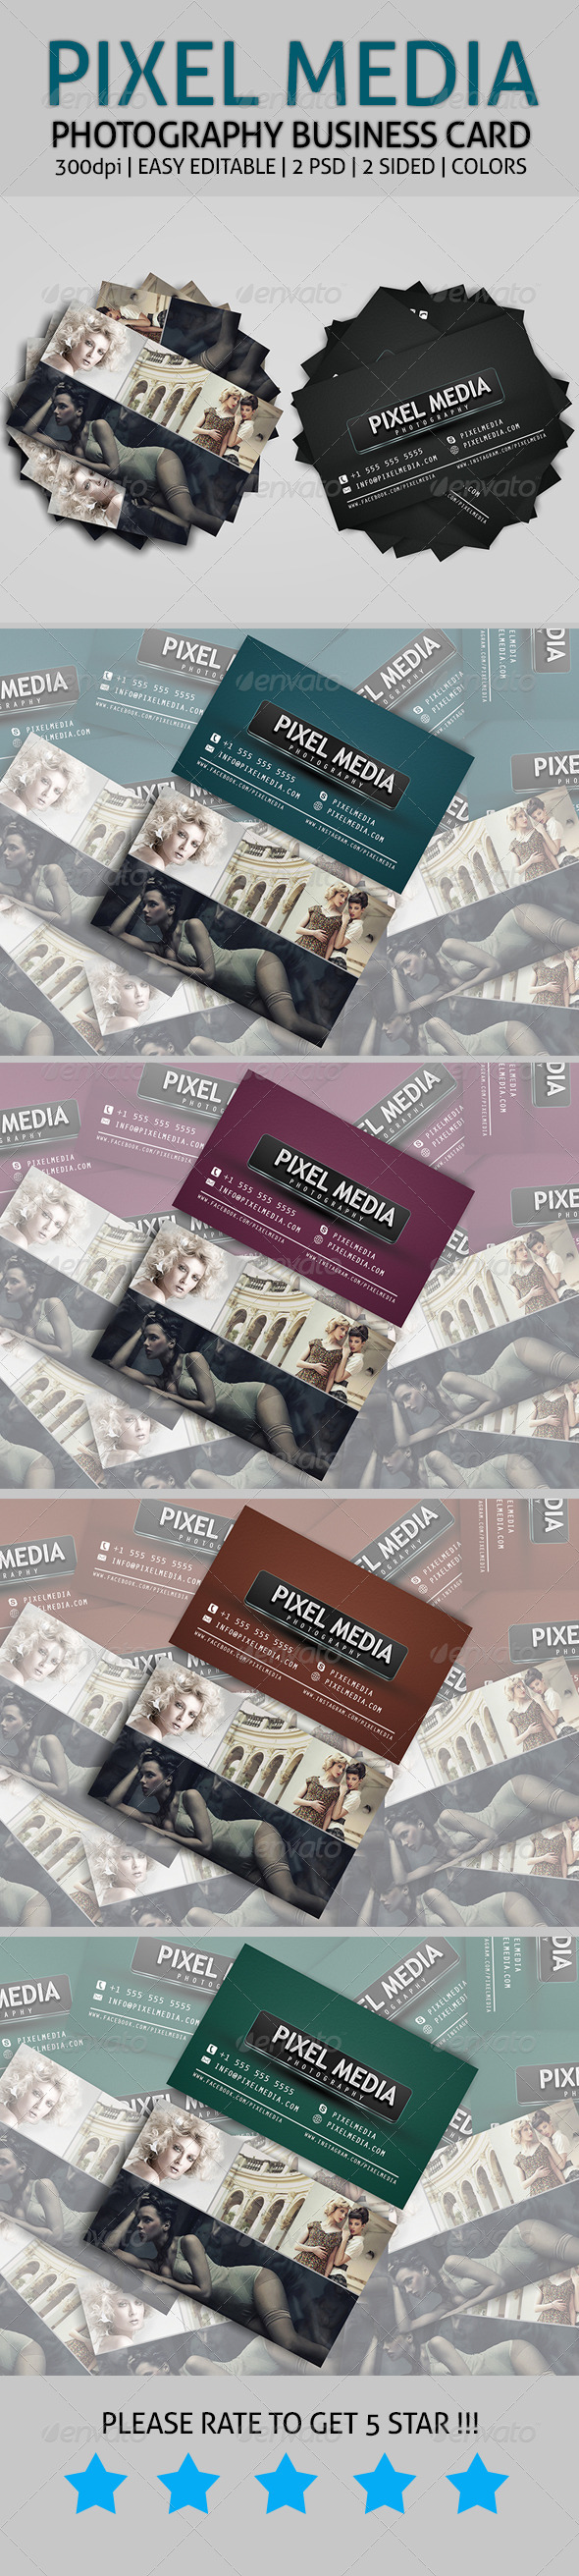 GraphicRiver Pixel Media Photography Business Card 7536280